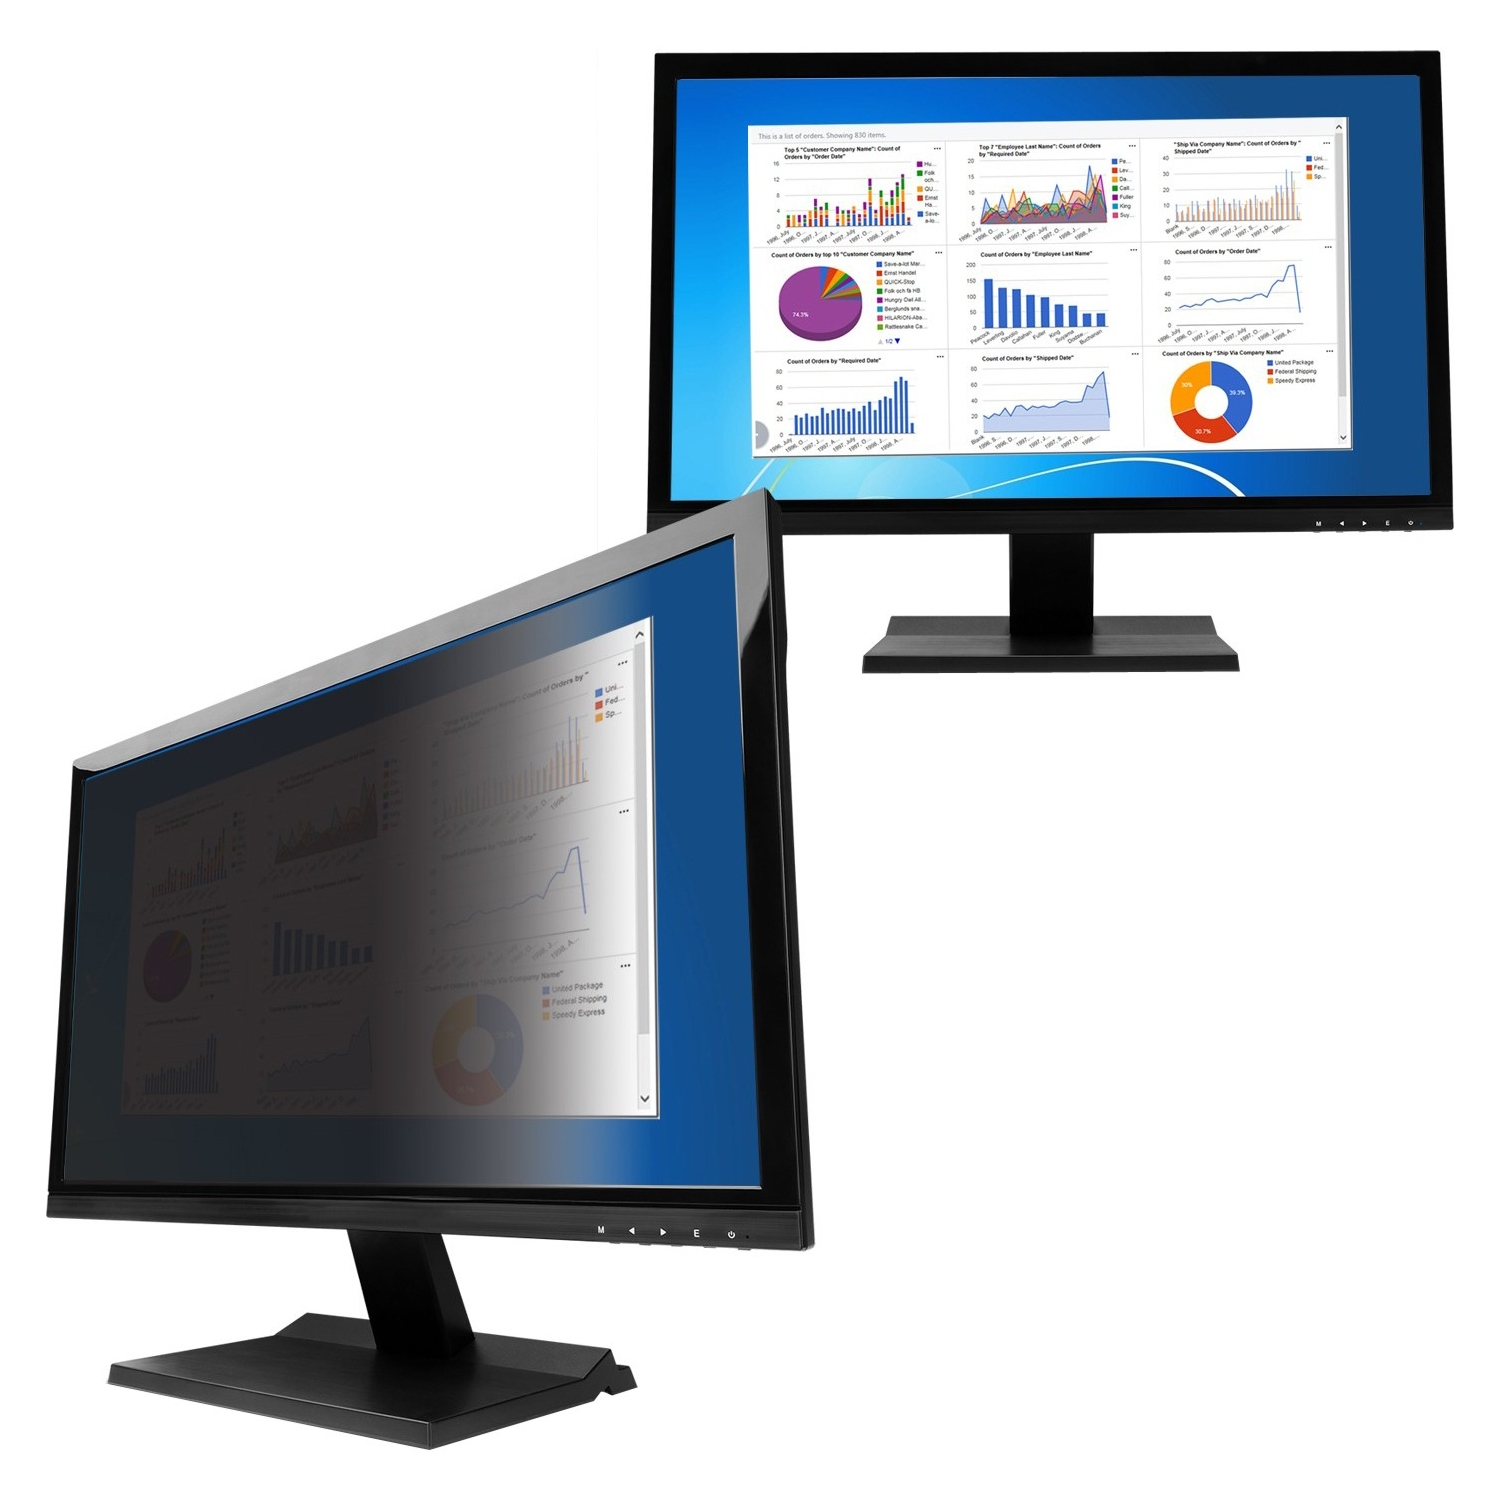 "V7 PS20.0W9A2-2N Privacy Screen Filter - For 20""LCD Monitor"